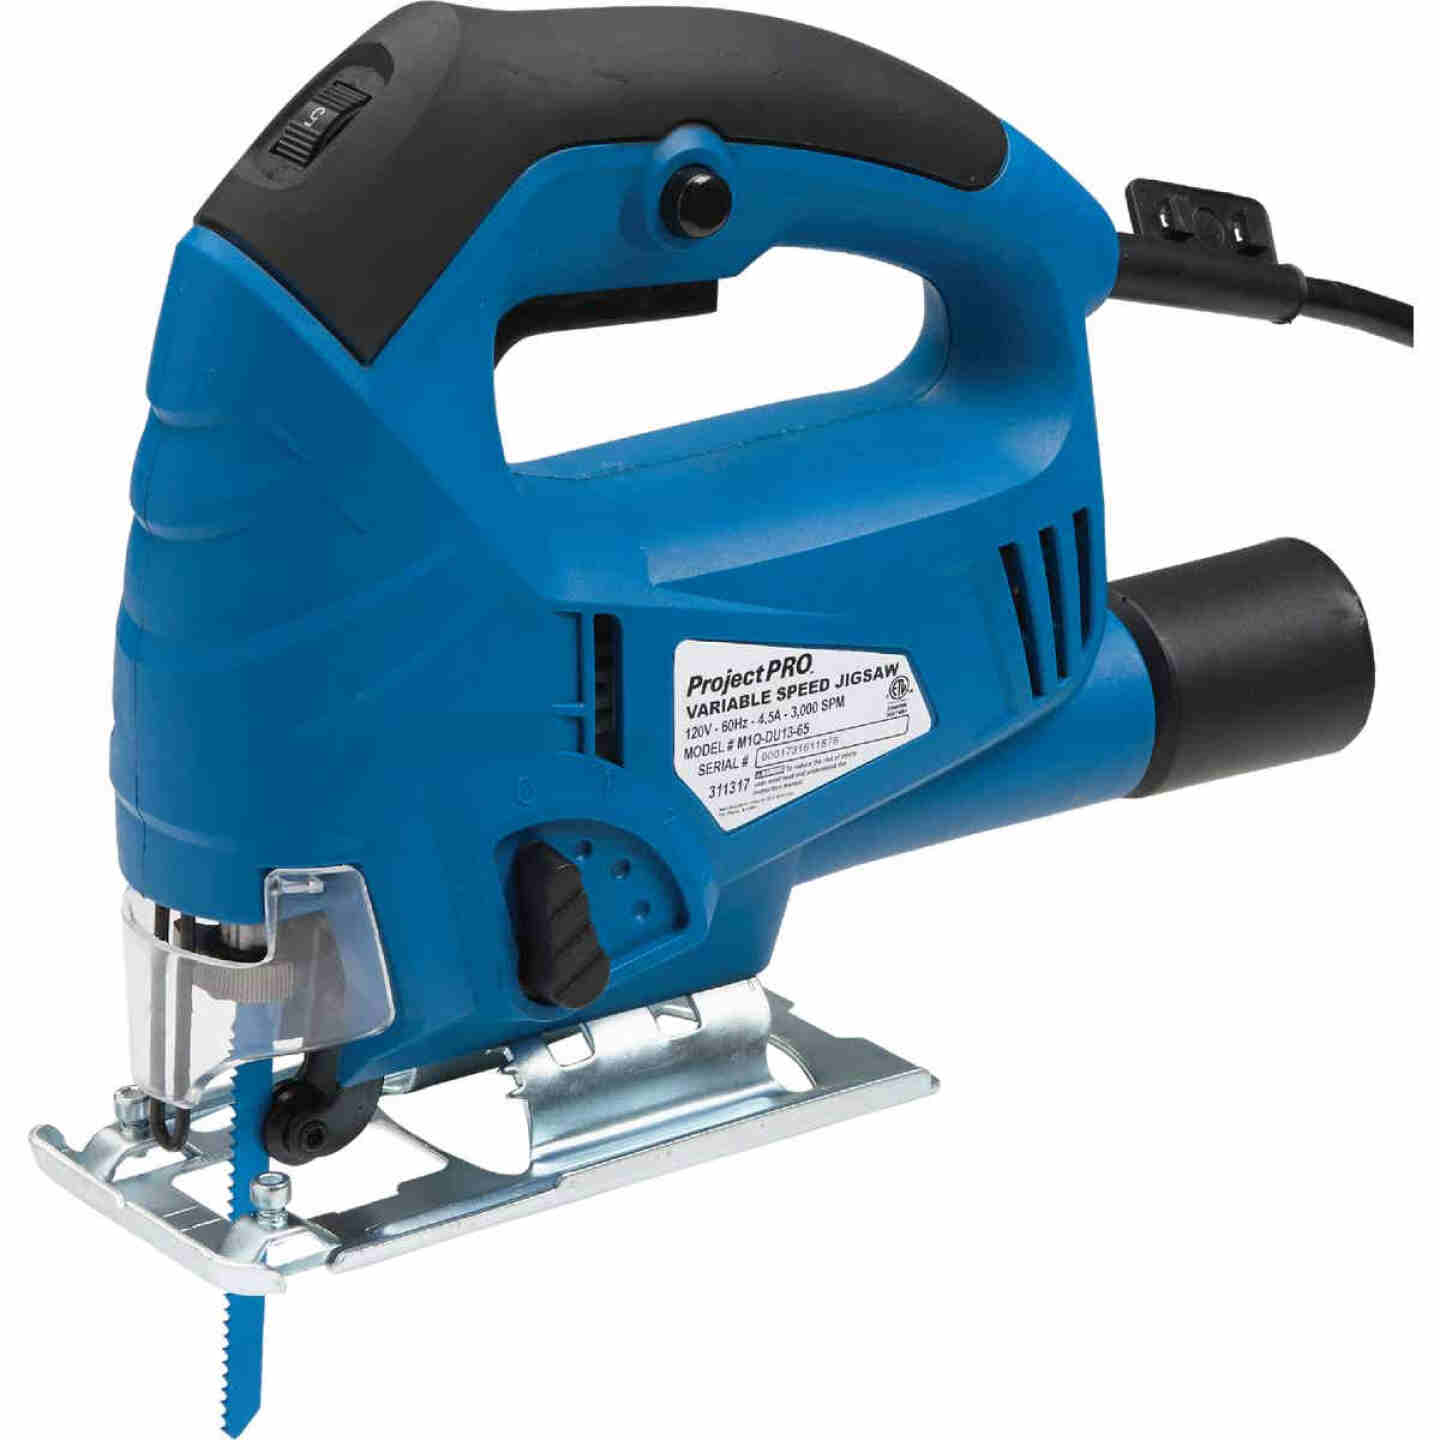 Project Pro 4.5A 0-3000 SPM Speed Jig Saw Image 3